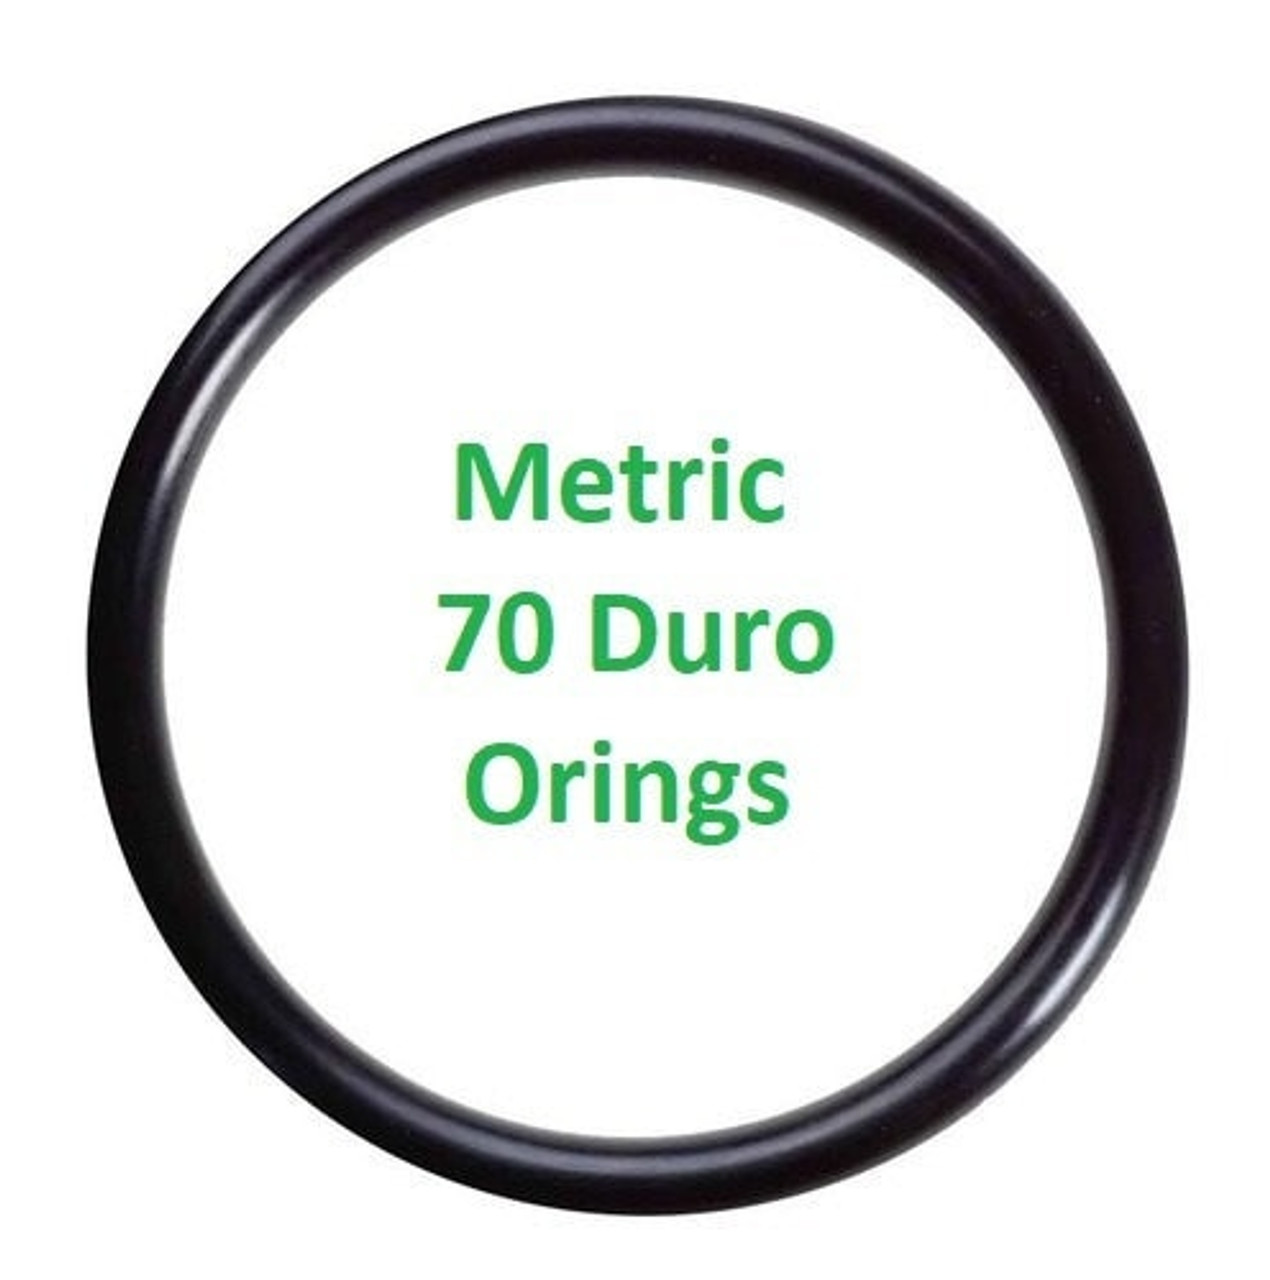 Metric Buna  O-rings 14 x 3mm  Price for 10 pcs